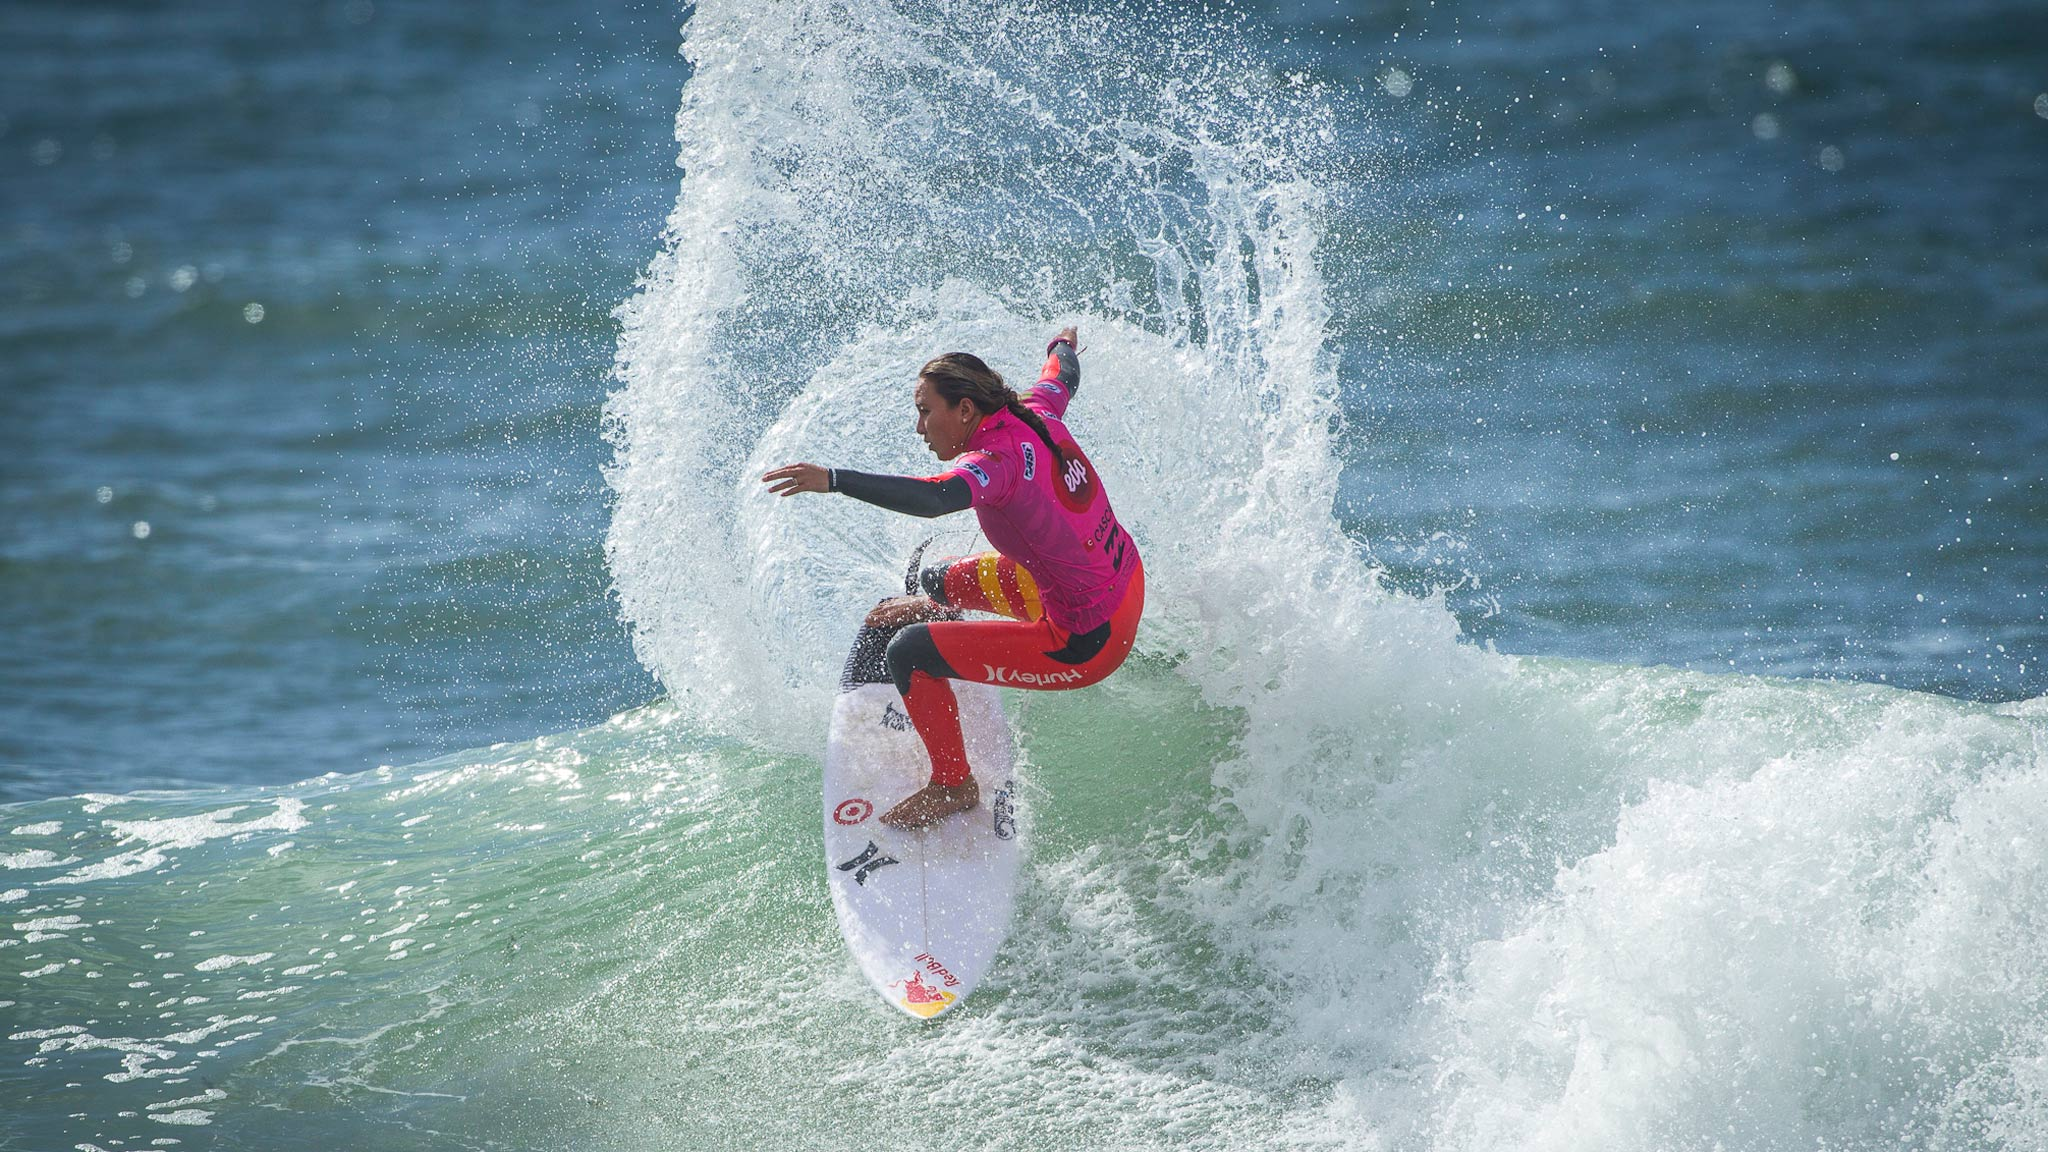 Carissa Moore and Tyler Wright are battling it out for the world title at the  Billabong Cascais Girls Pro in Portugal.